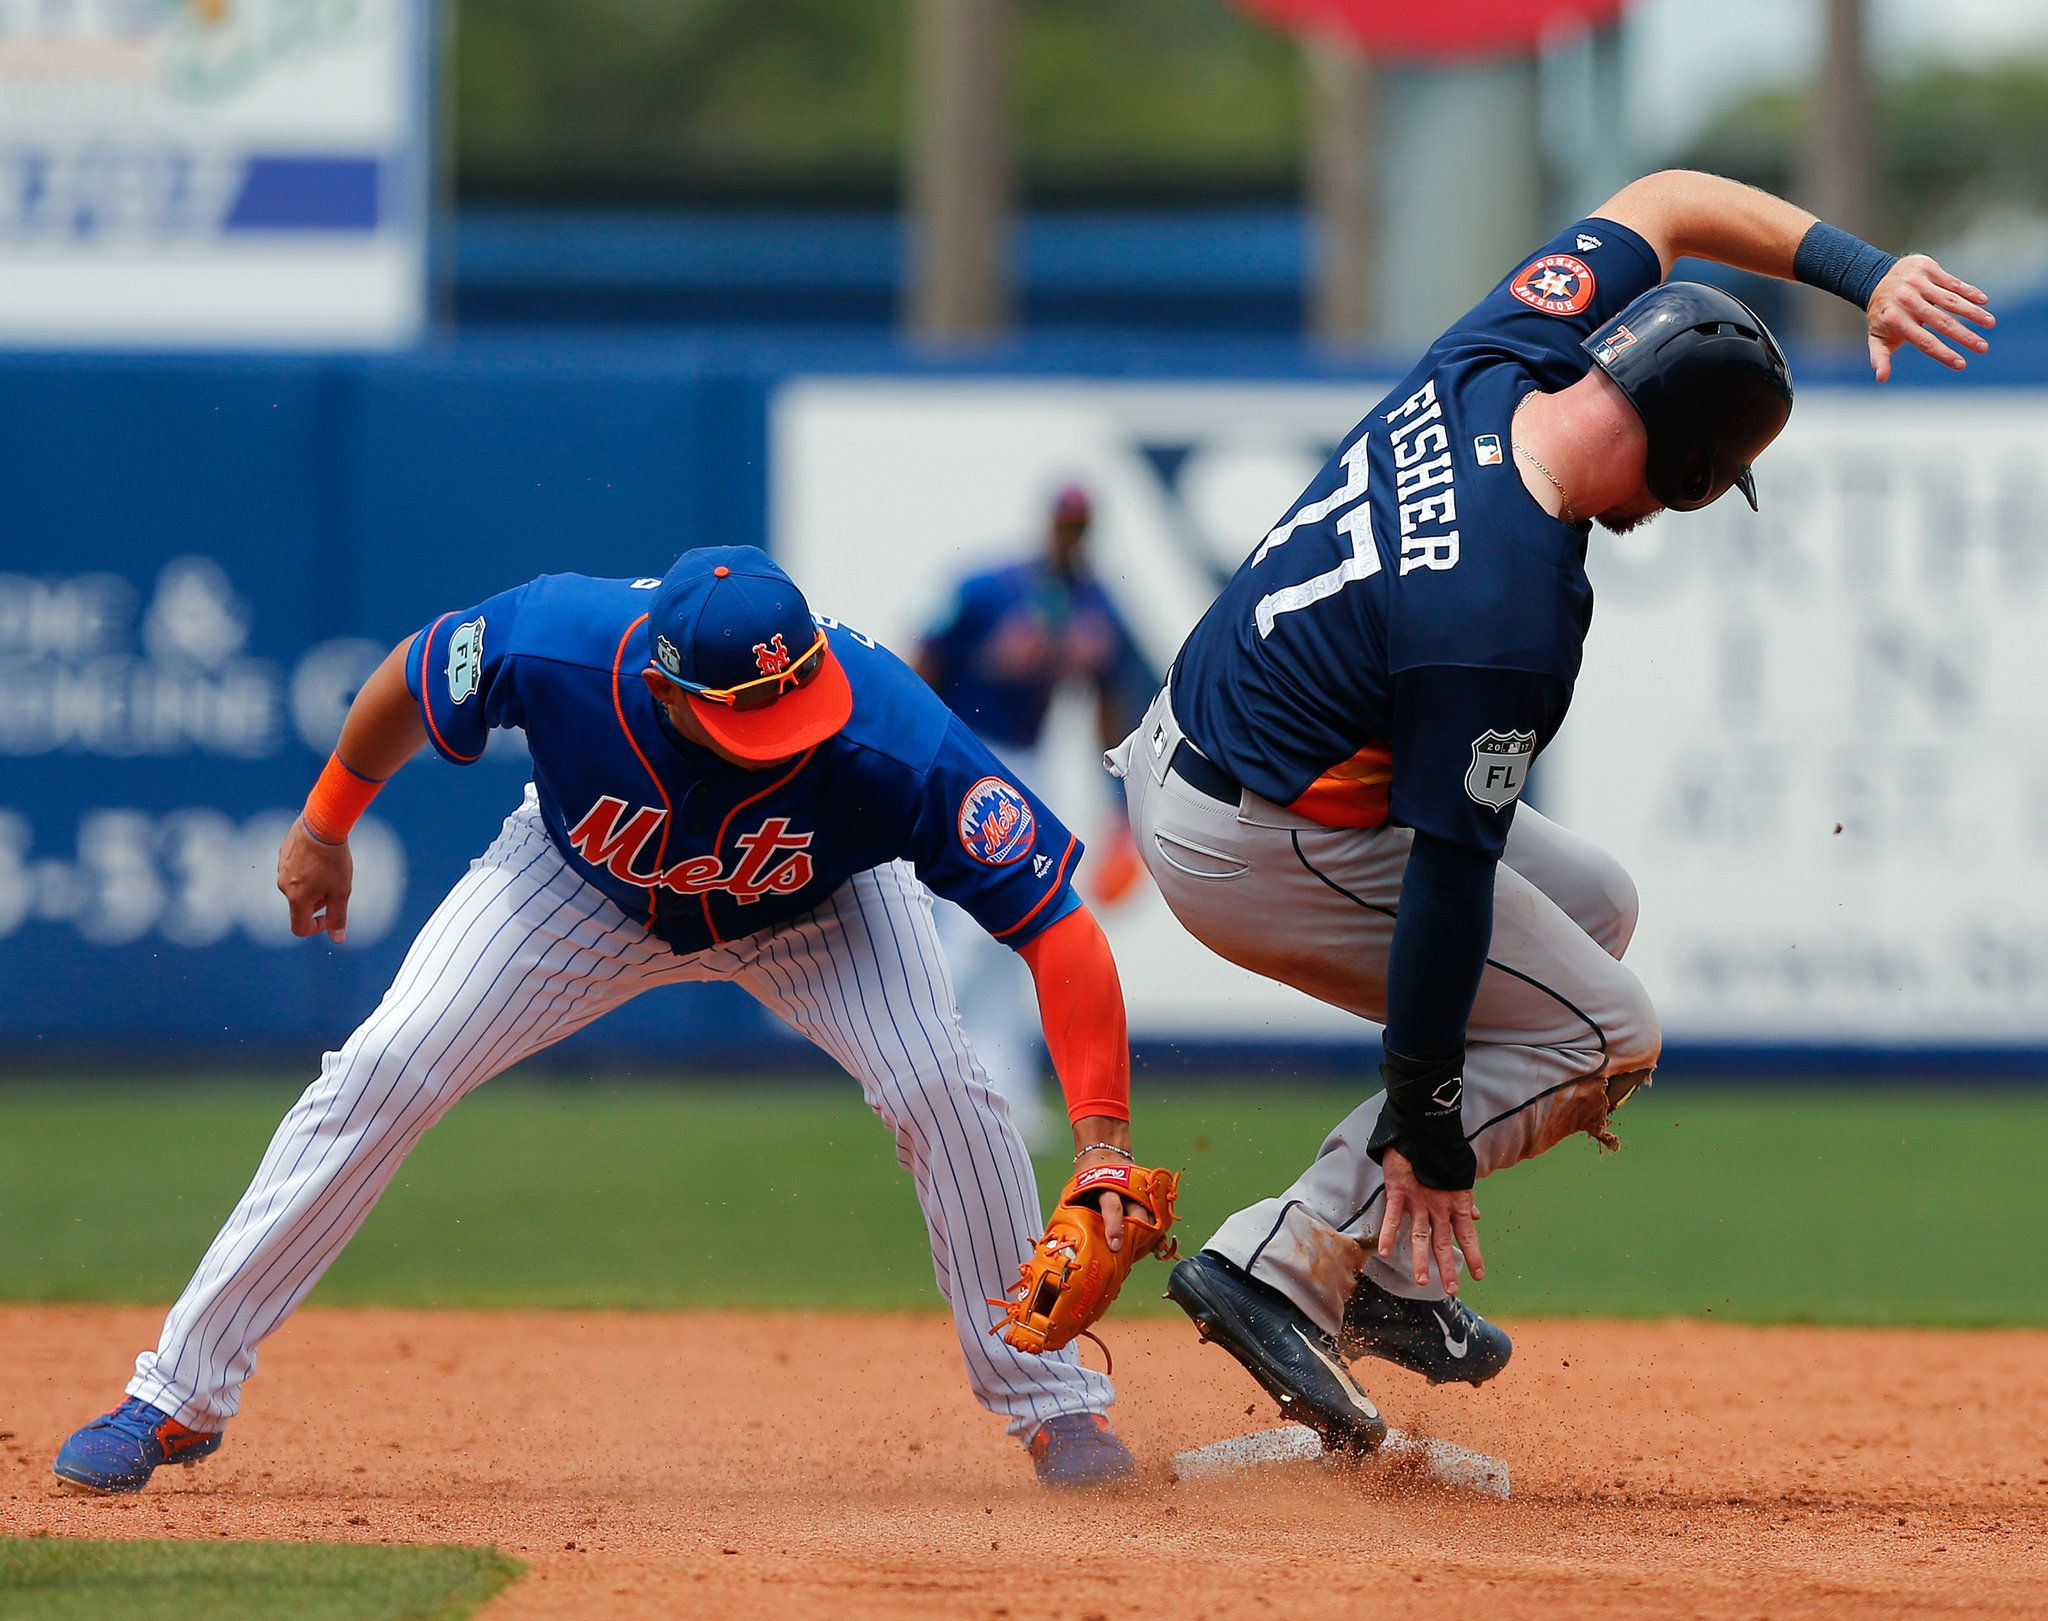 Photo              The Astros' Derek Fisher (77) stealing second base on Friday as Asdrubal Cabrera, the Mets' shortstop, applied a late tag.                                      Credit             John Bazemore/Associated Press                      PORT ST. LUCIE, Fla. — Mets starter Noah...  http://usa.swengen.com/stolen-bases-continue-to-plague-noah-syndergaard-and-travis-darnaud/